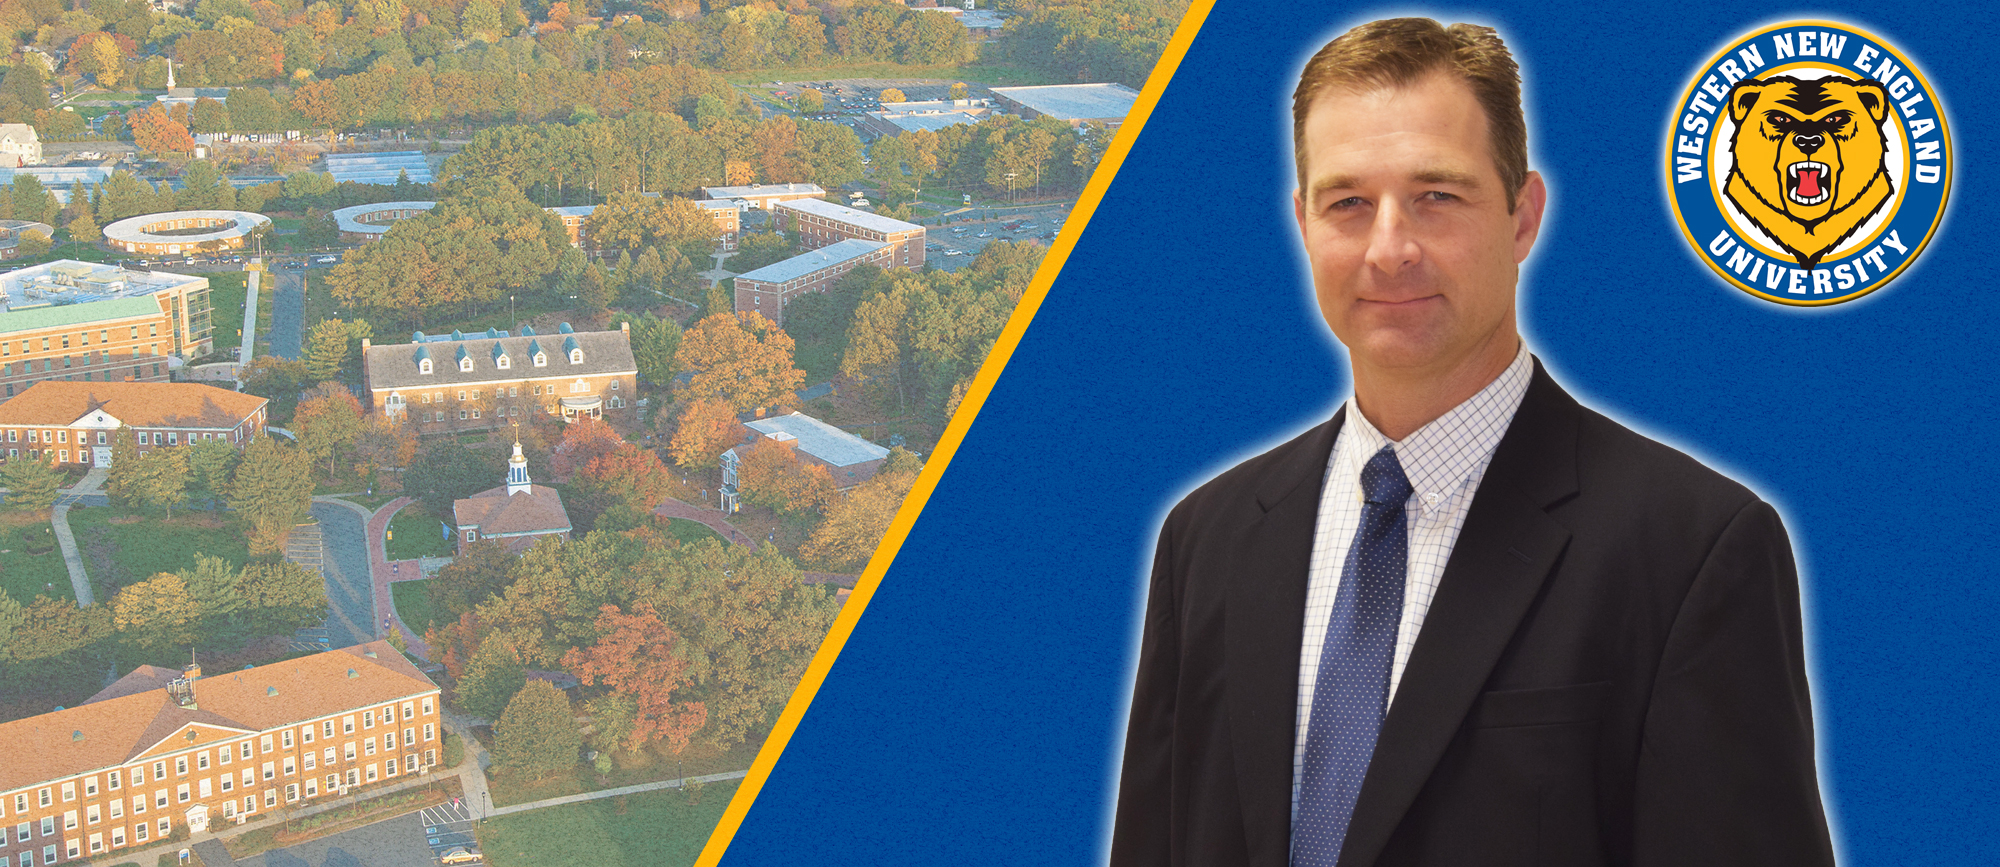 Matt LaBranche Named Athletic Director at Western New England University